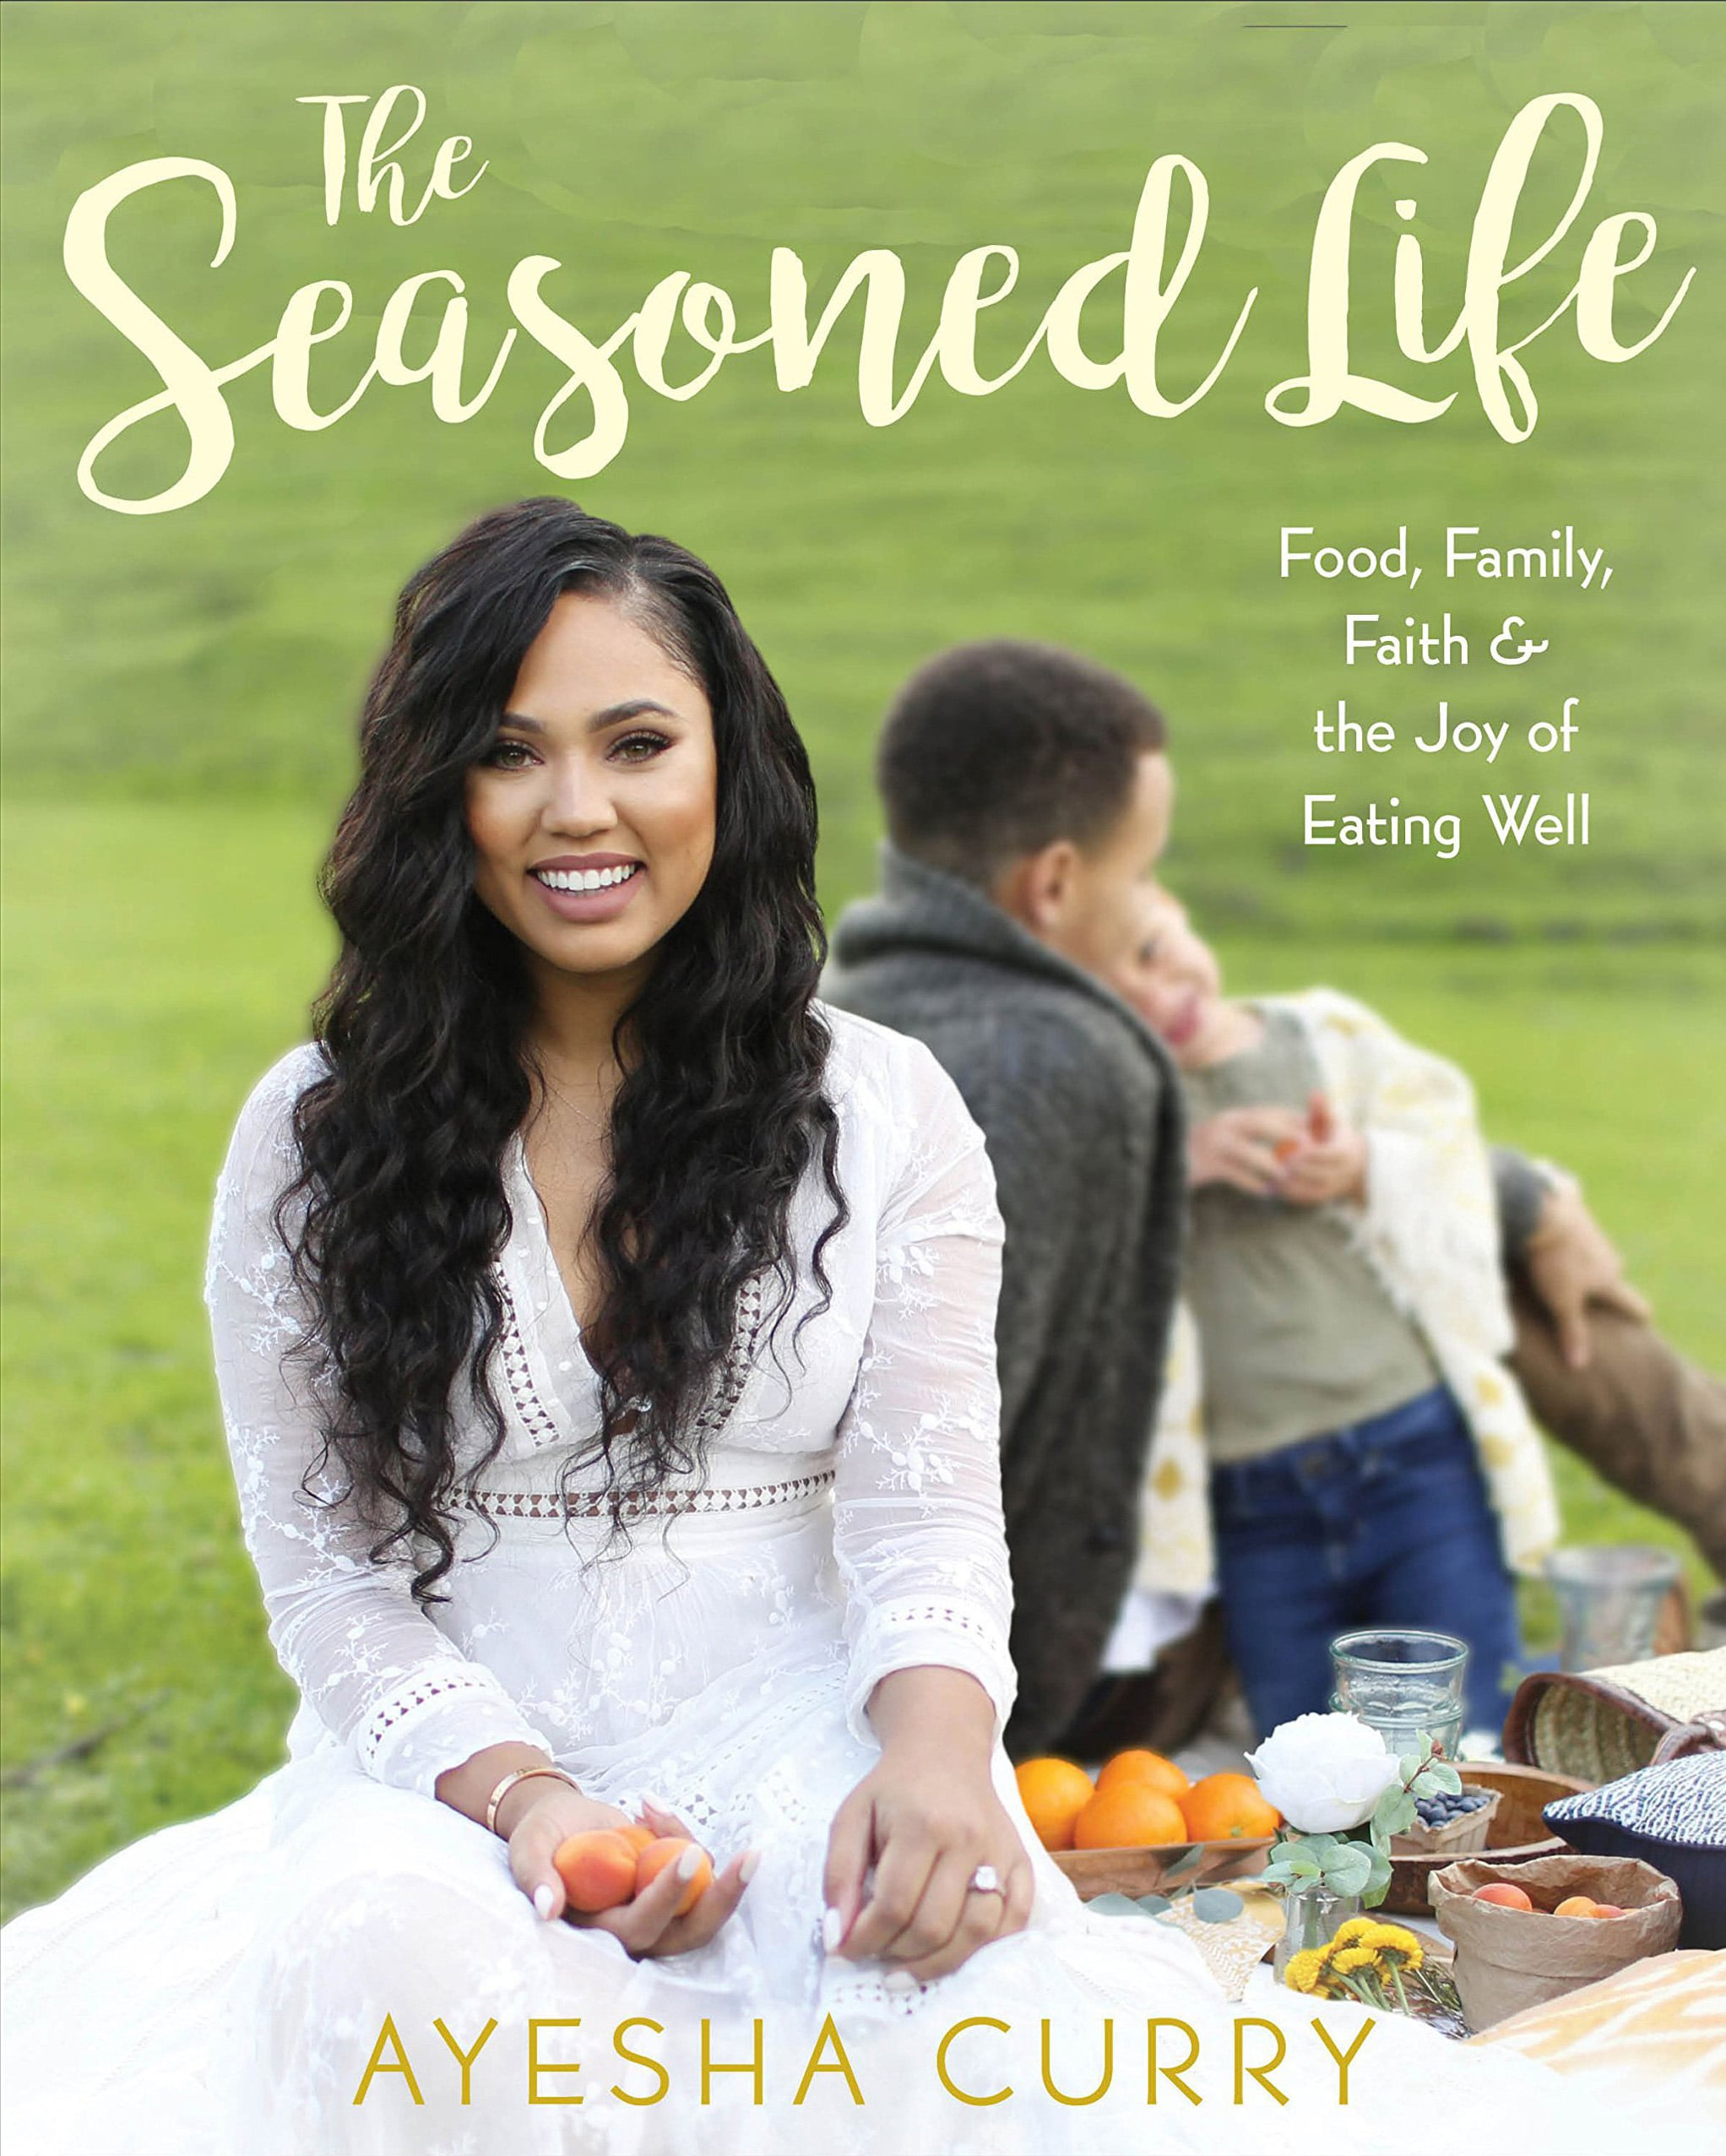 Ayesha currys the seasoned life cookbook review popsugar food is loved in my life somehow involves and revolves around food ayesha curry says in the introduction of her new cookbook the seasoned life food forumfinder Image collections